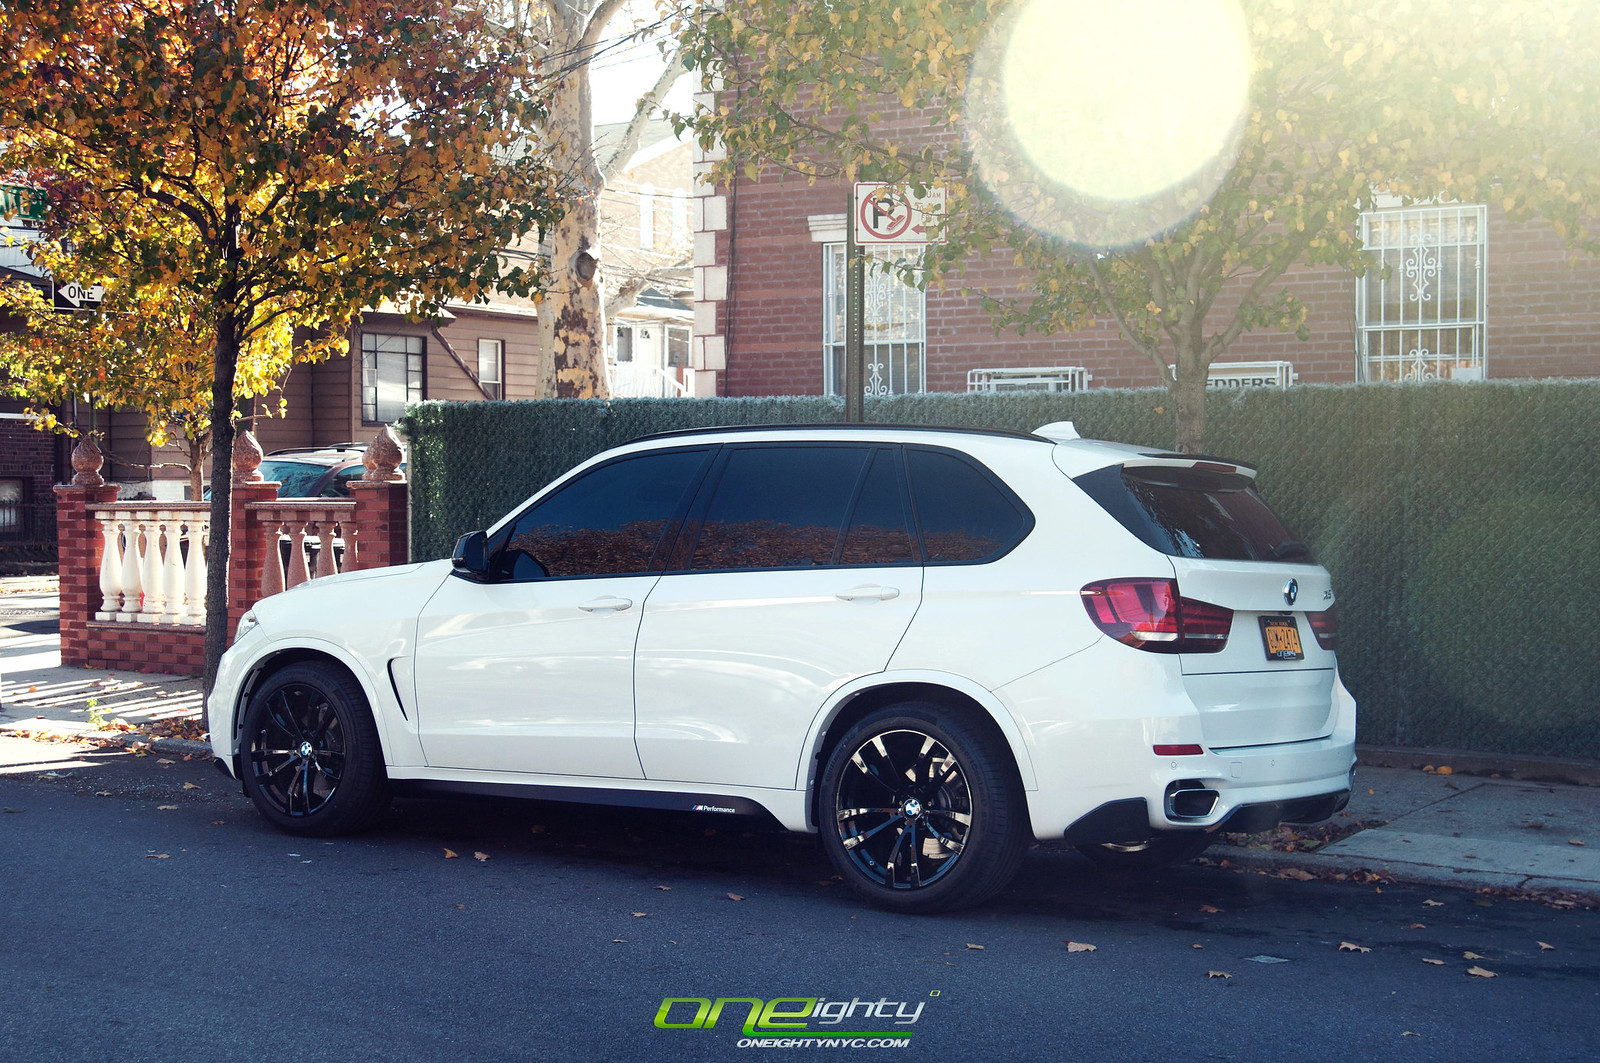 ONEighty AW F15 X5 MSport Outfitted with MPerformance  HR